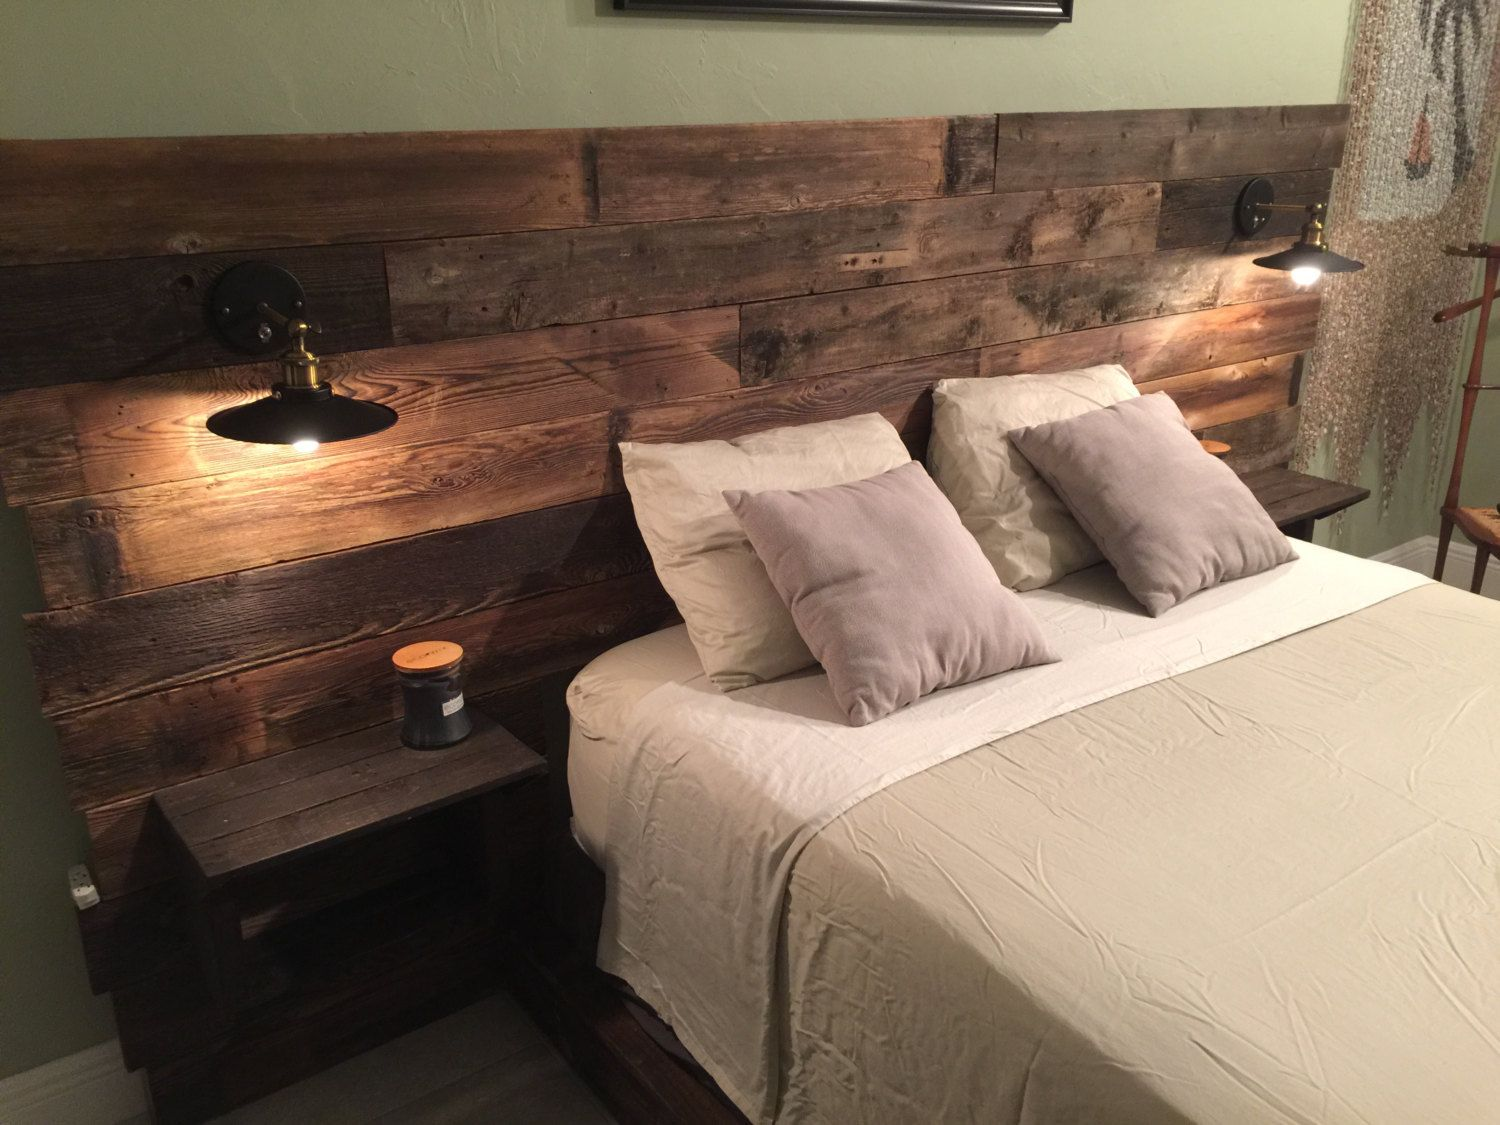 Rustic Headboard Reclaimed Headboard Head board with Lights Built In Shelf Rustic Lighting Queen Size Headboard King Size Headbaord : queen-size-headboards-diy - designwebi.com